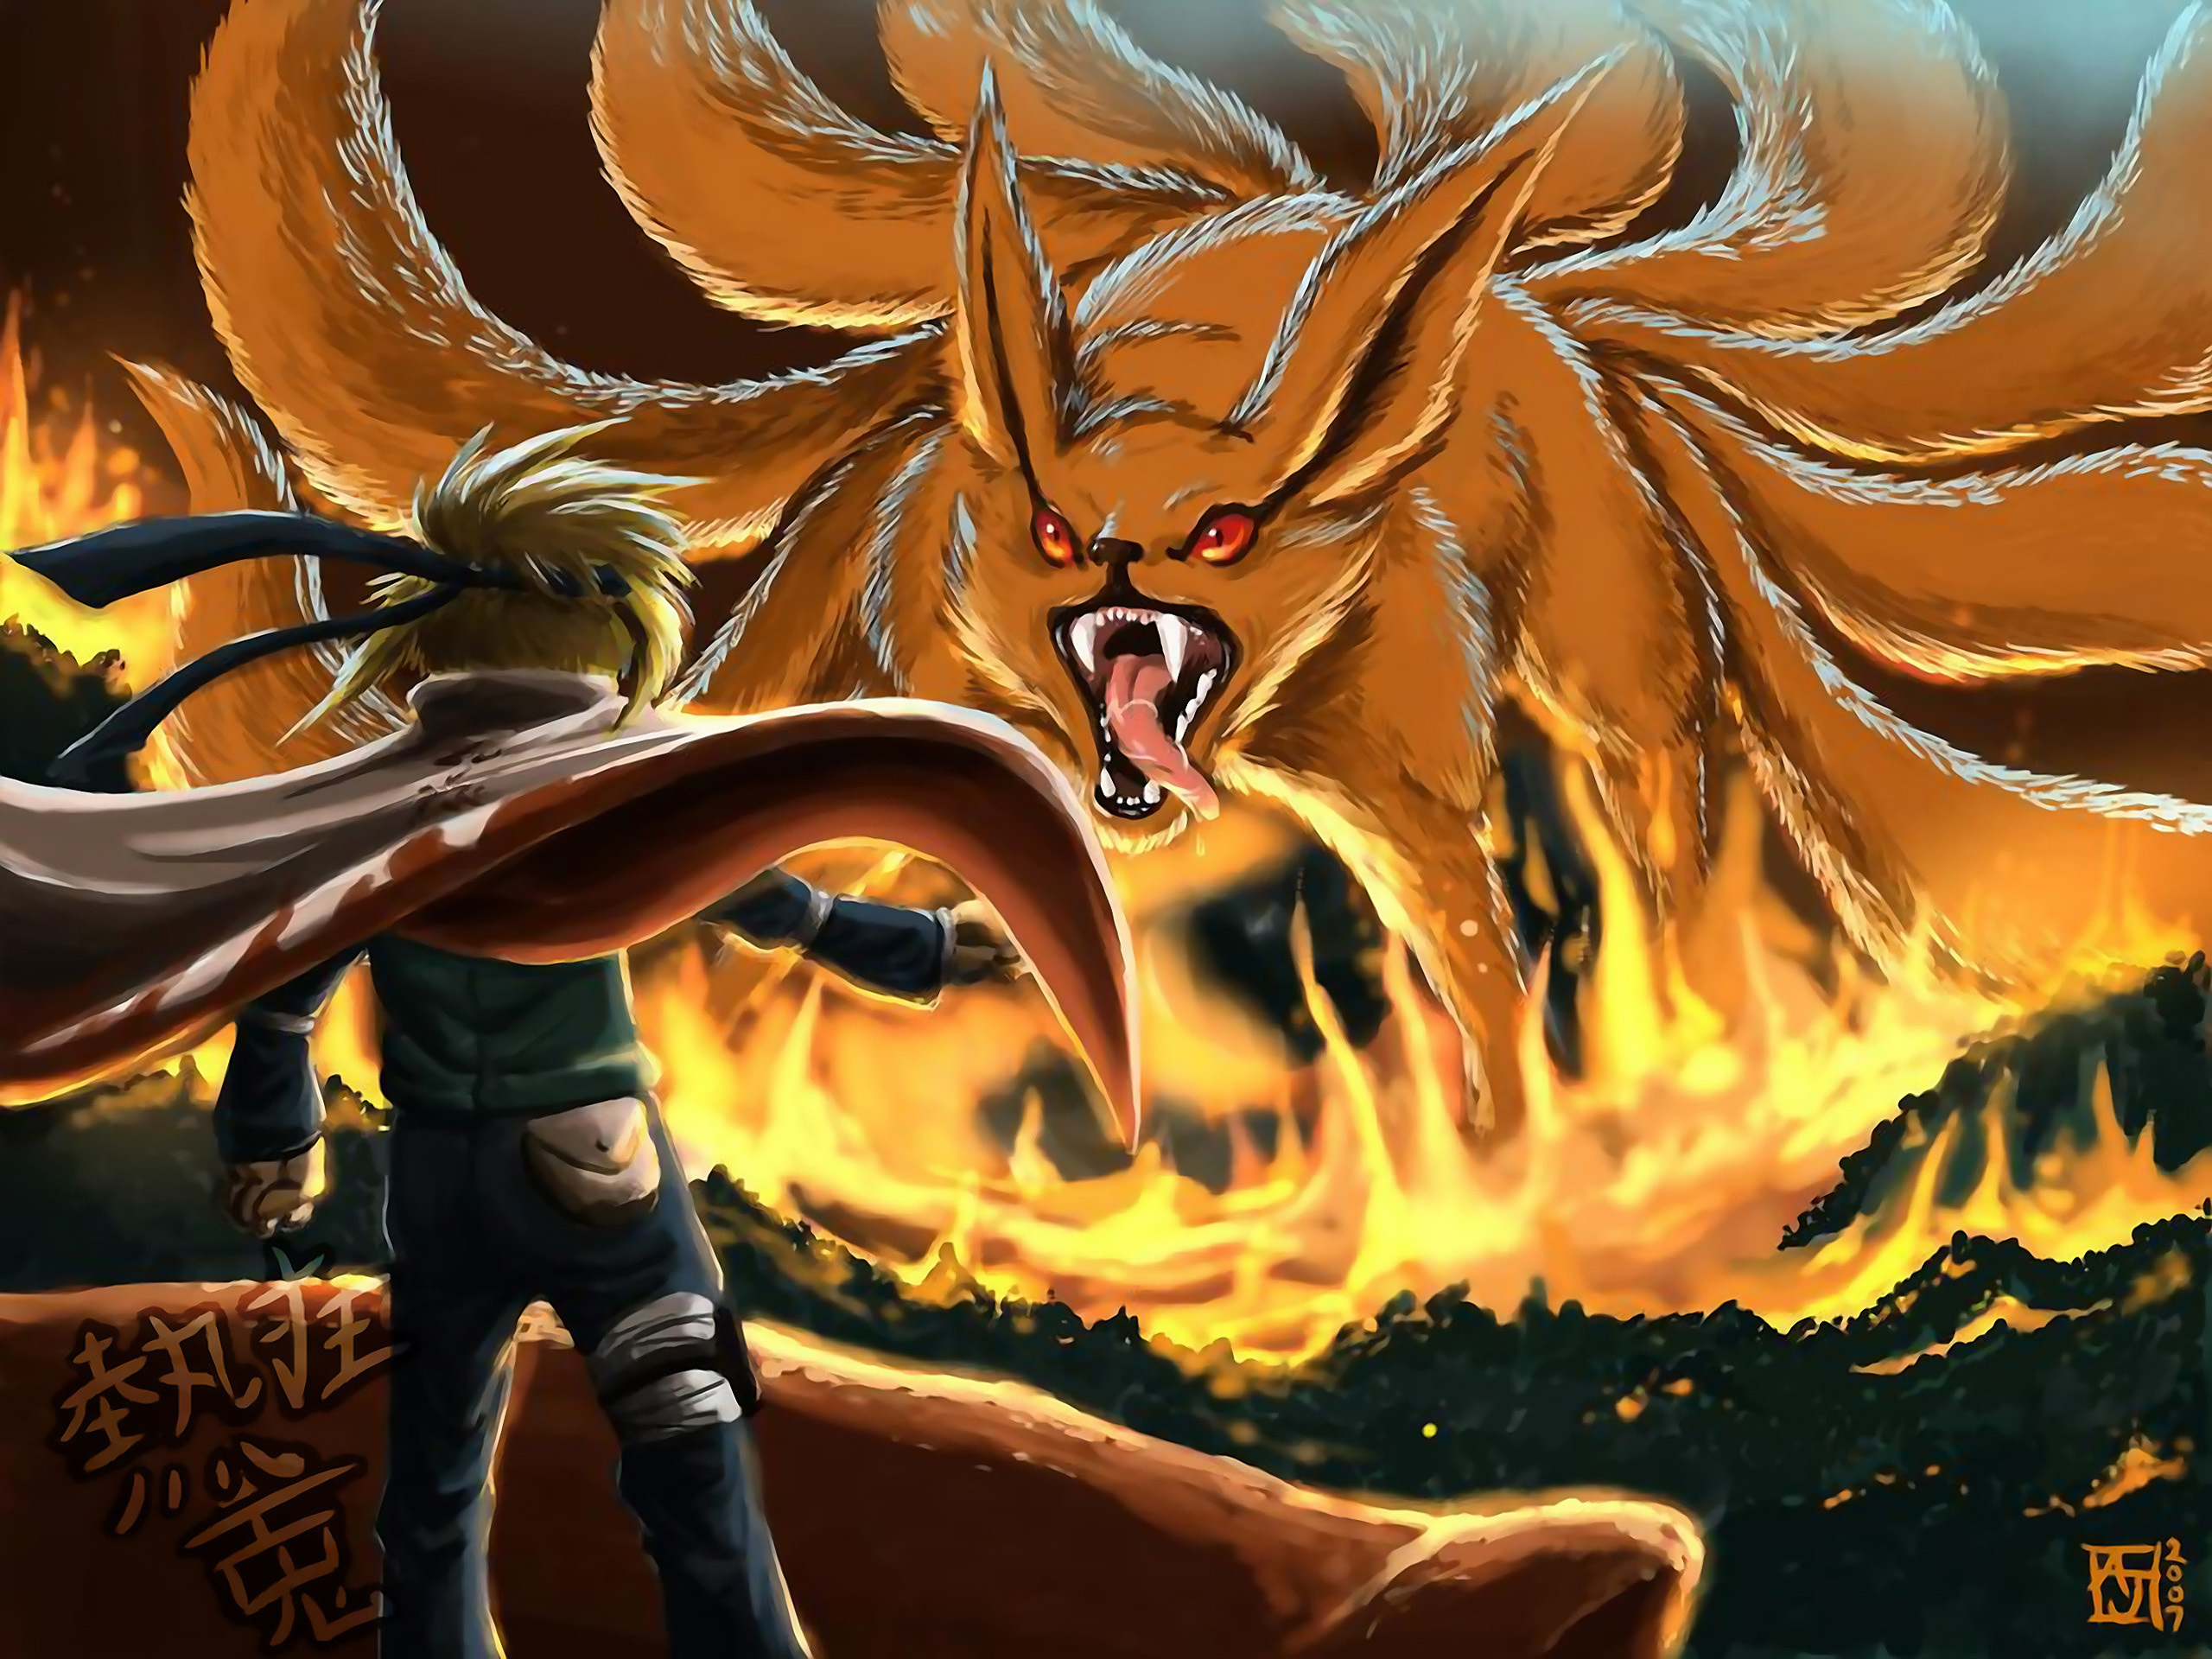 0 Tails Naruto 14 nine-tails (naruto) hd wallpapers | background images